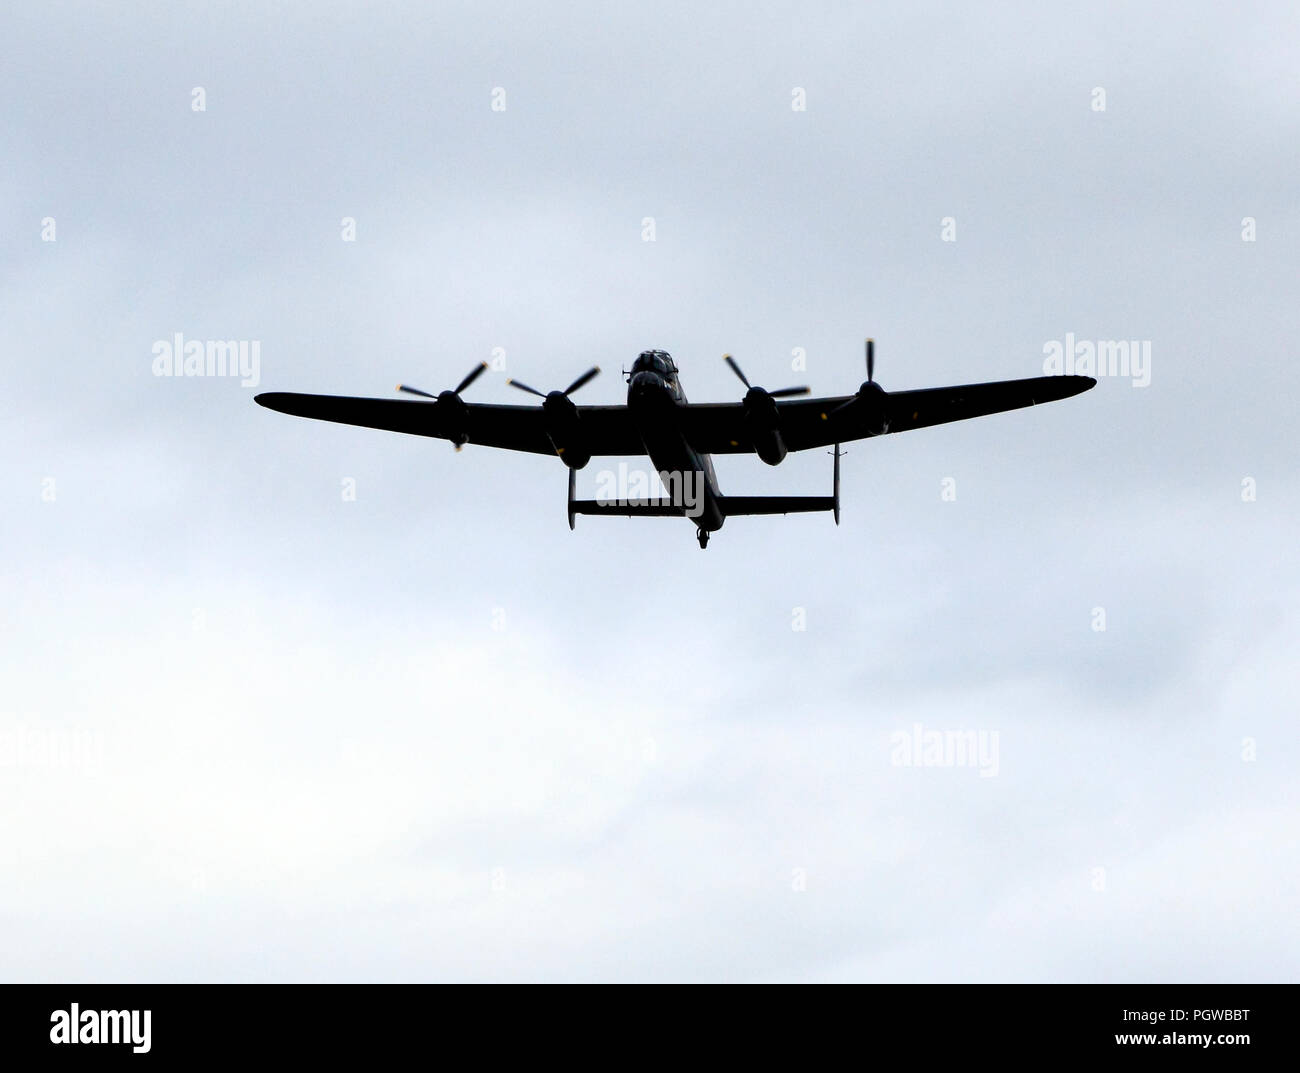 Lancaster Bomber, aeroplane, RAF, World War 2, bombing, built 1945 - Stock Image